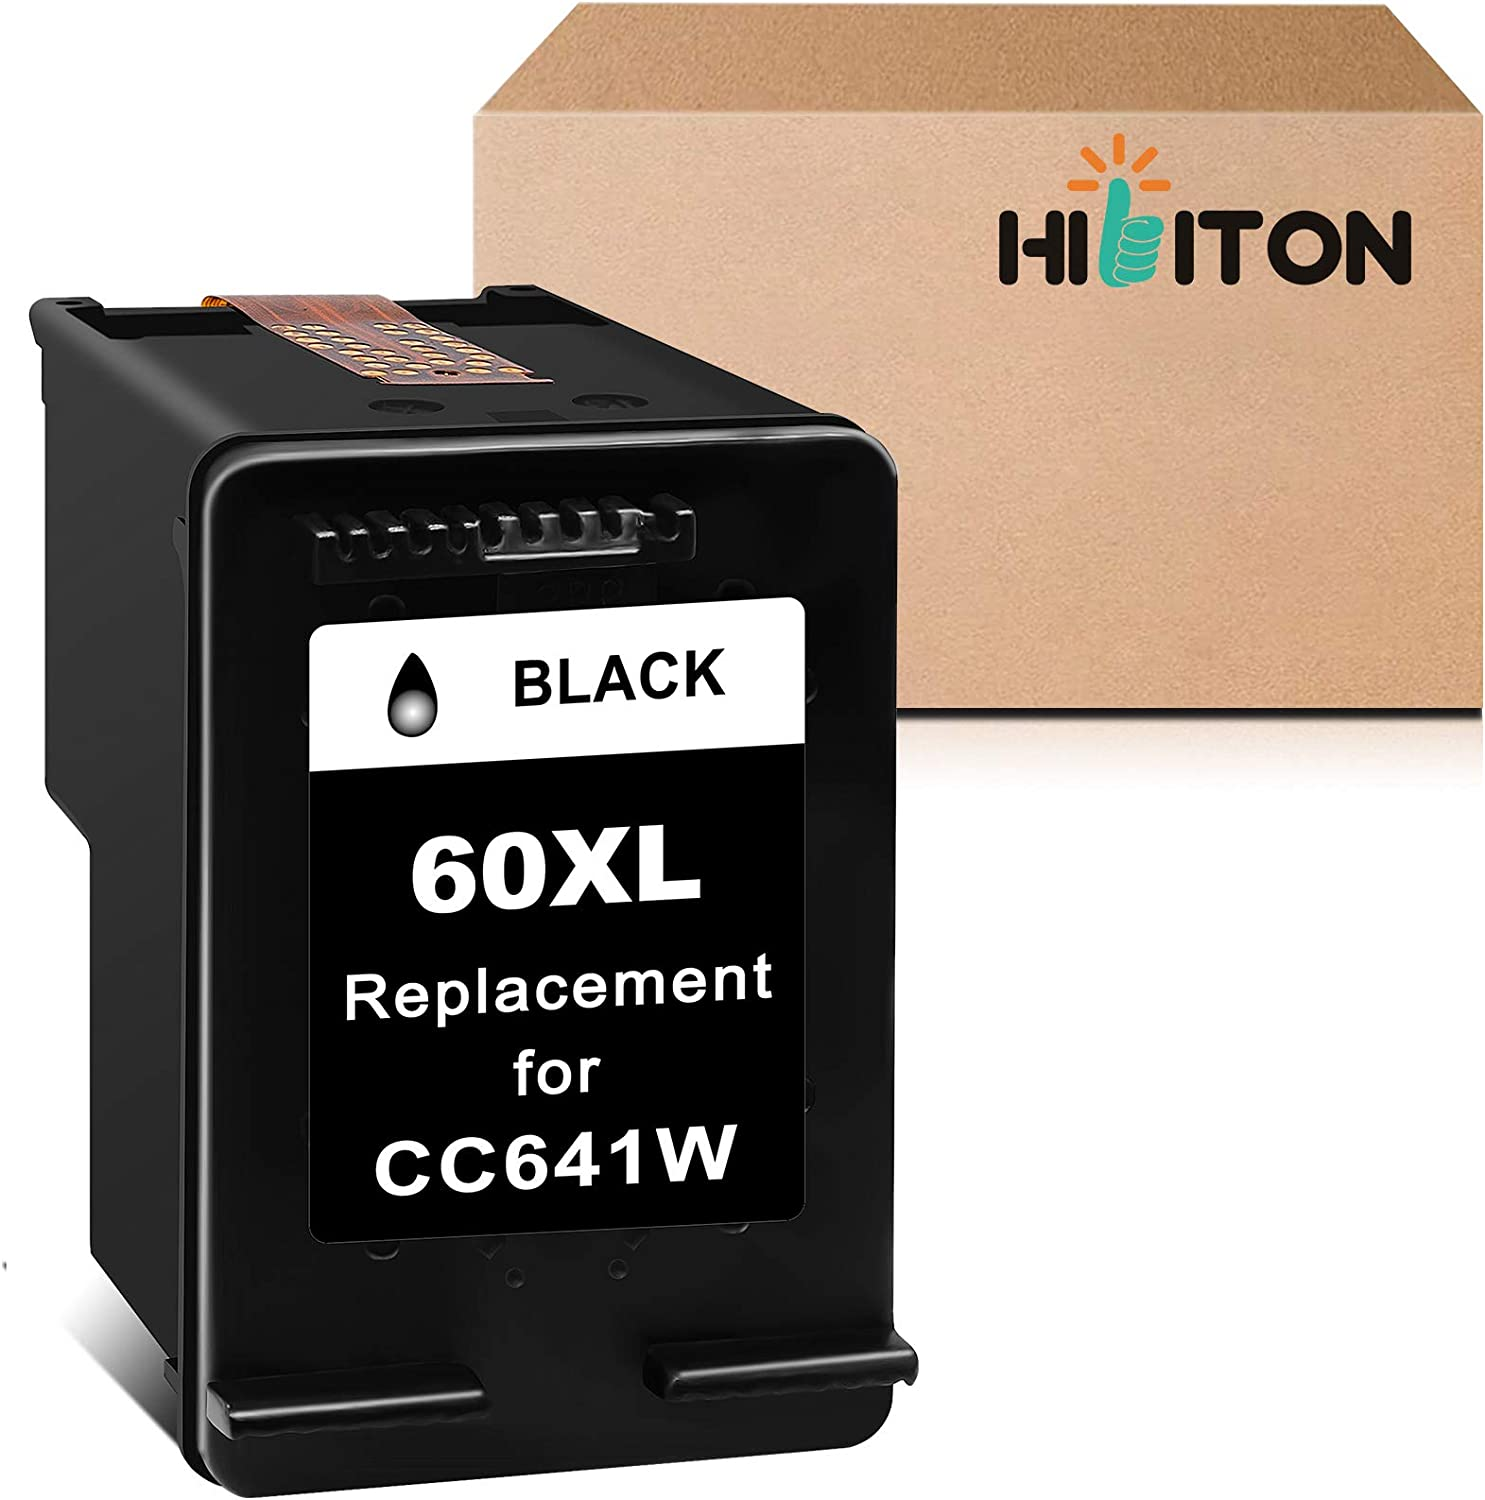 HibiTon Remanufactured Ink Cartridge Replacement for HP 60XL 60 XL Work with PhotoSmart C4700 C4795 C4600 D110a Envy 120 100 114 DeskJet F4235 F4580 F4400 F2430 F4440 F2480 Printer (Black) 1 Pack